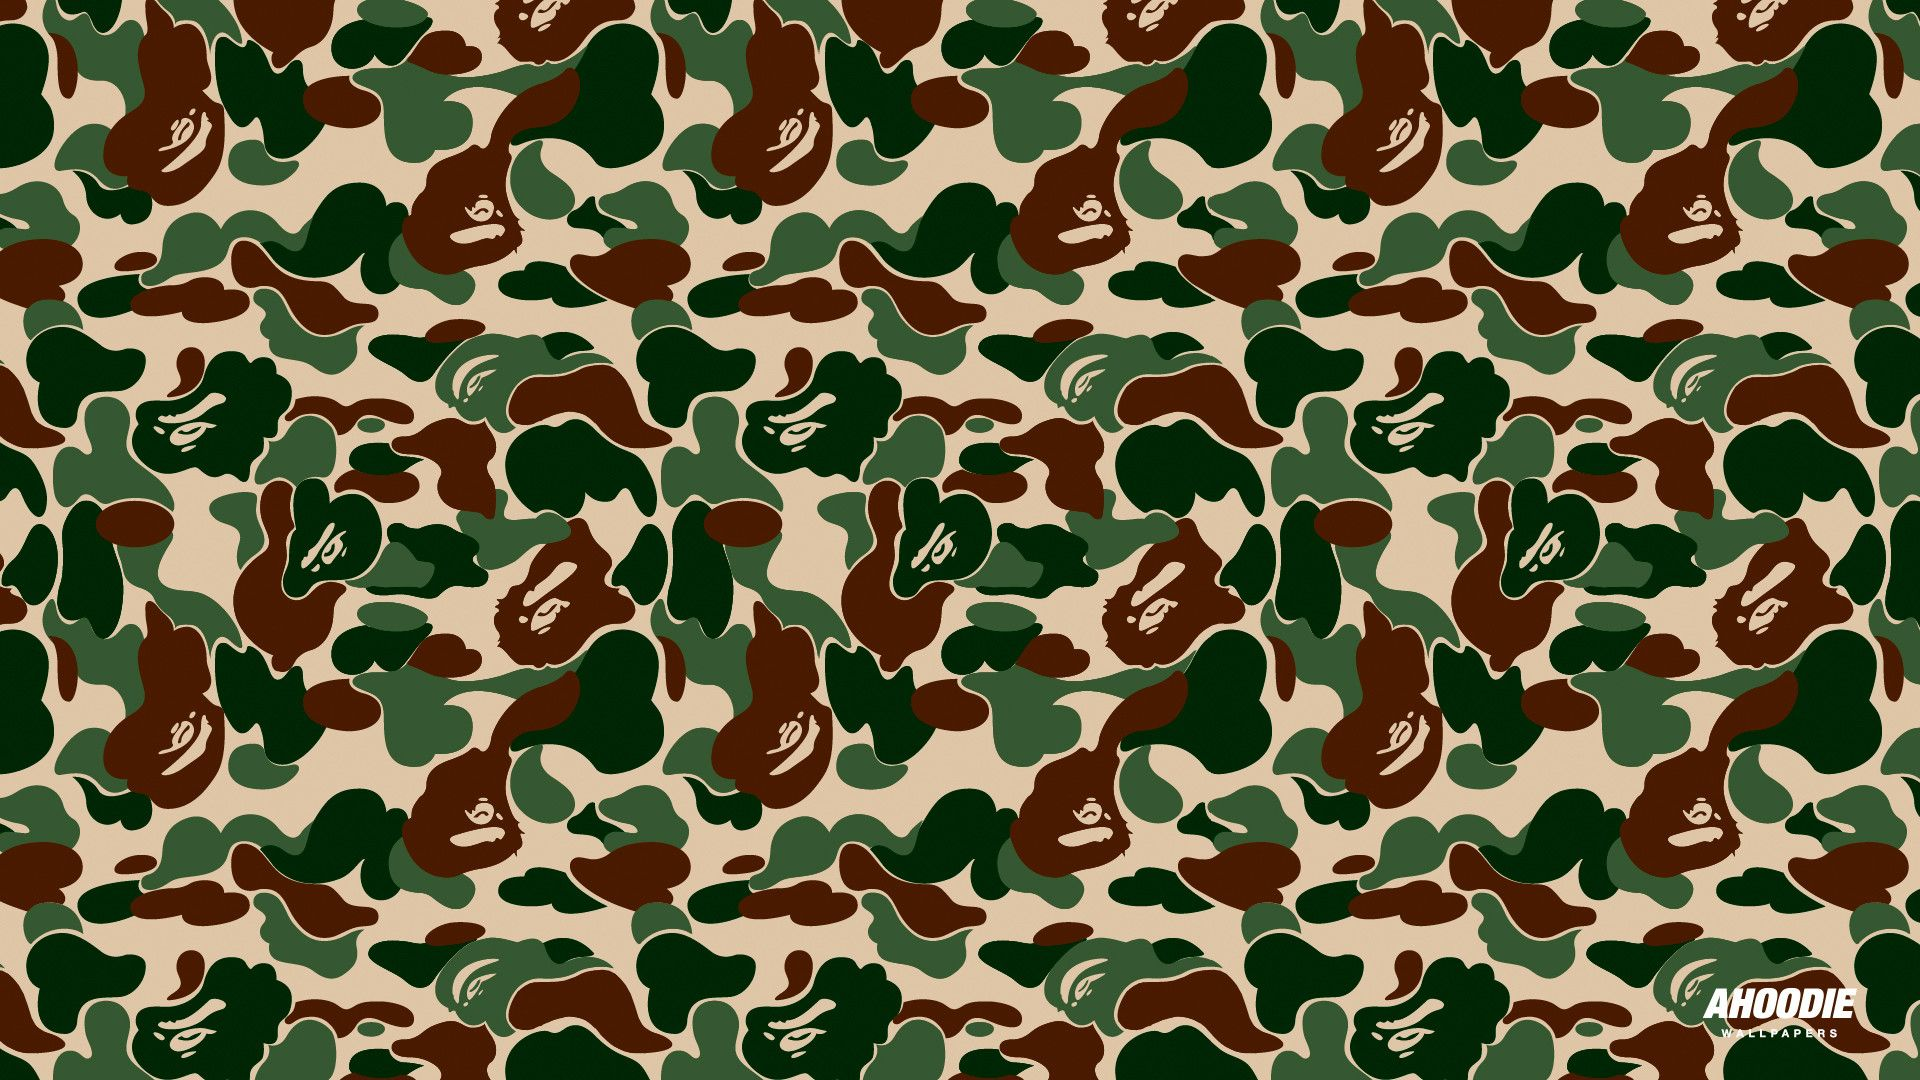 1920x1080 62+ Army Camo Wallpapers on WallpaperPlay